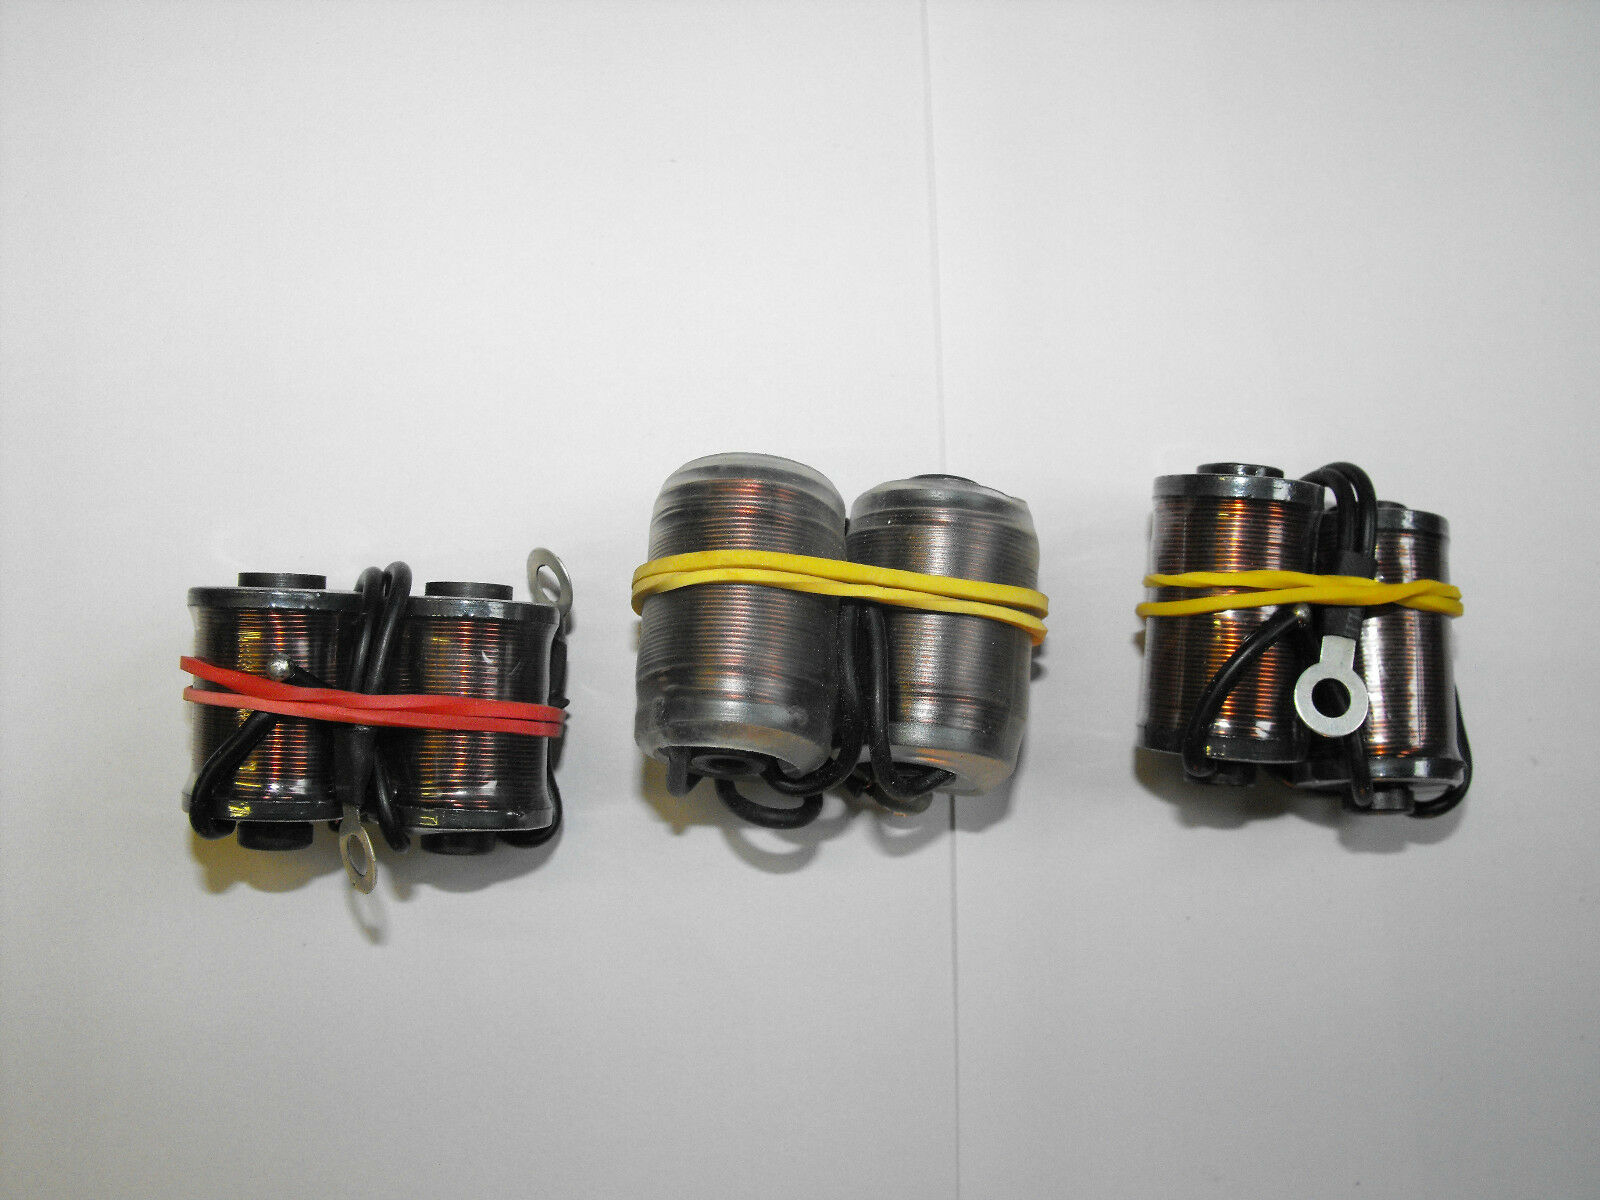 10 rap tattoo machine coil sets 3 sizes to chose from 28mm for Tattoo machine coil covers